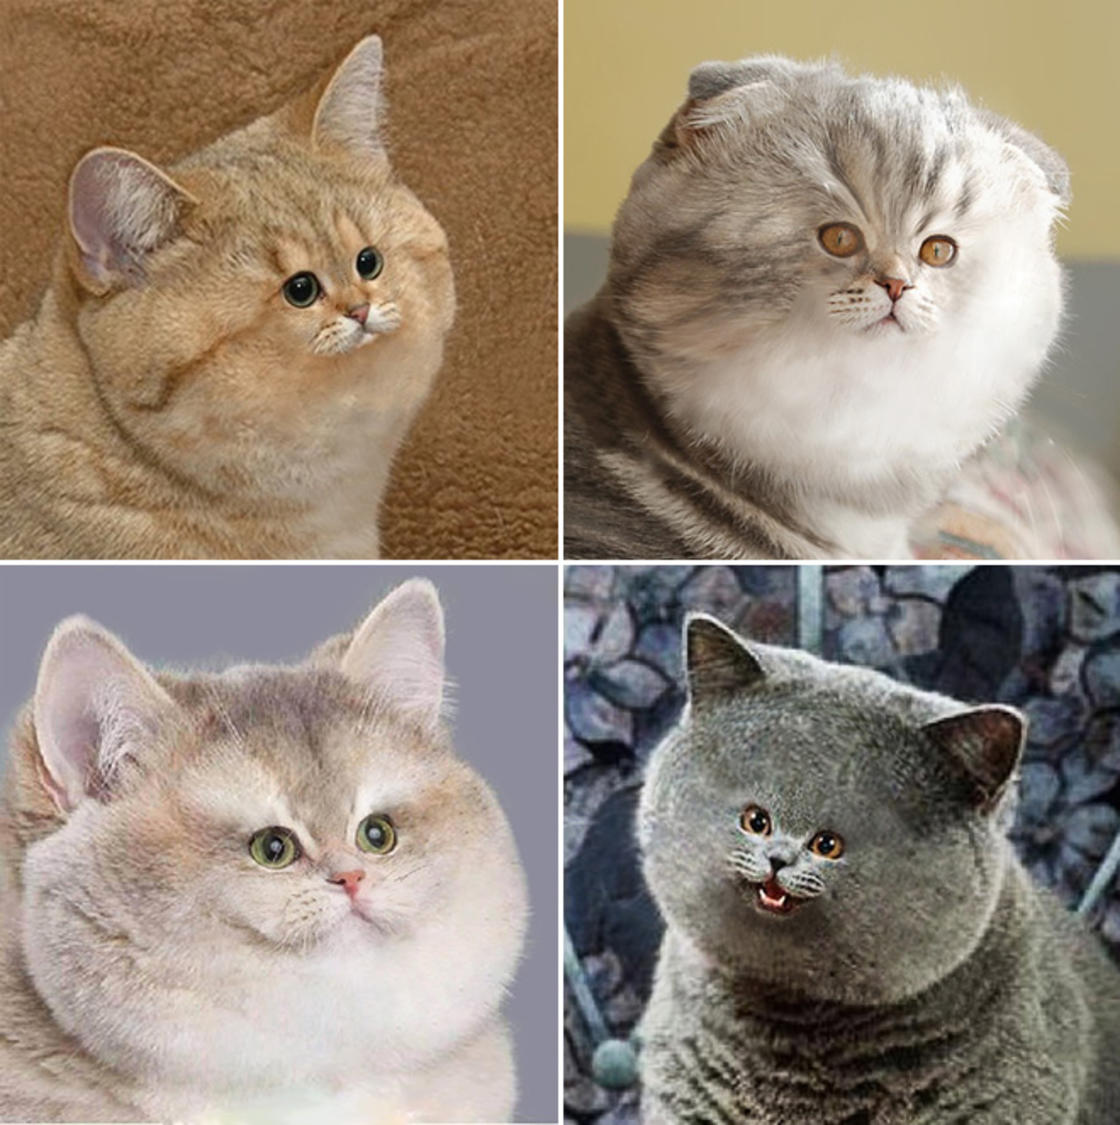 Tiny Face Cats - Internet is giving weird tiny faces to cats